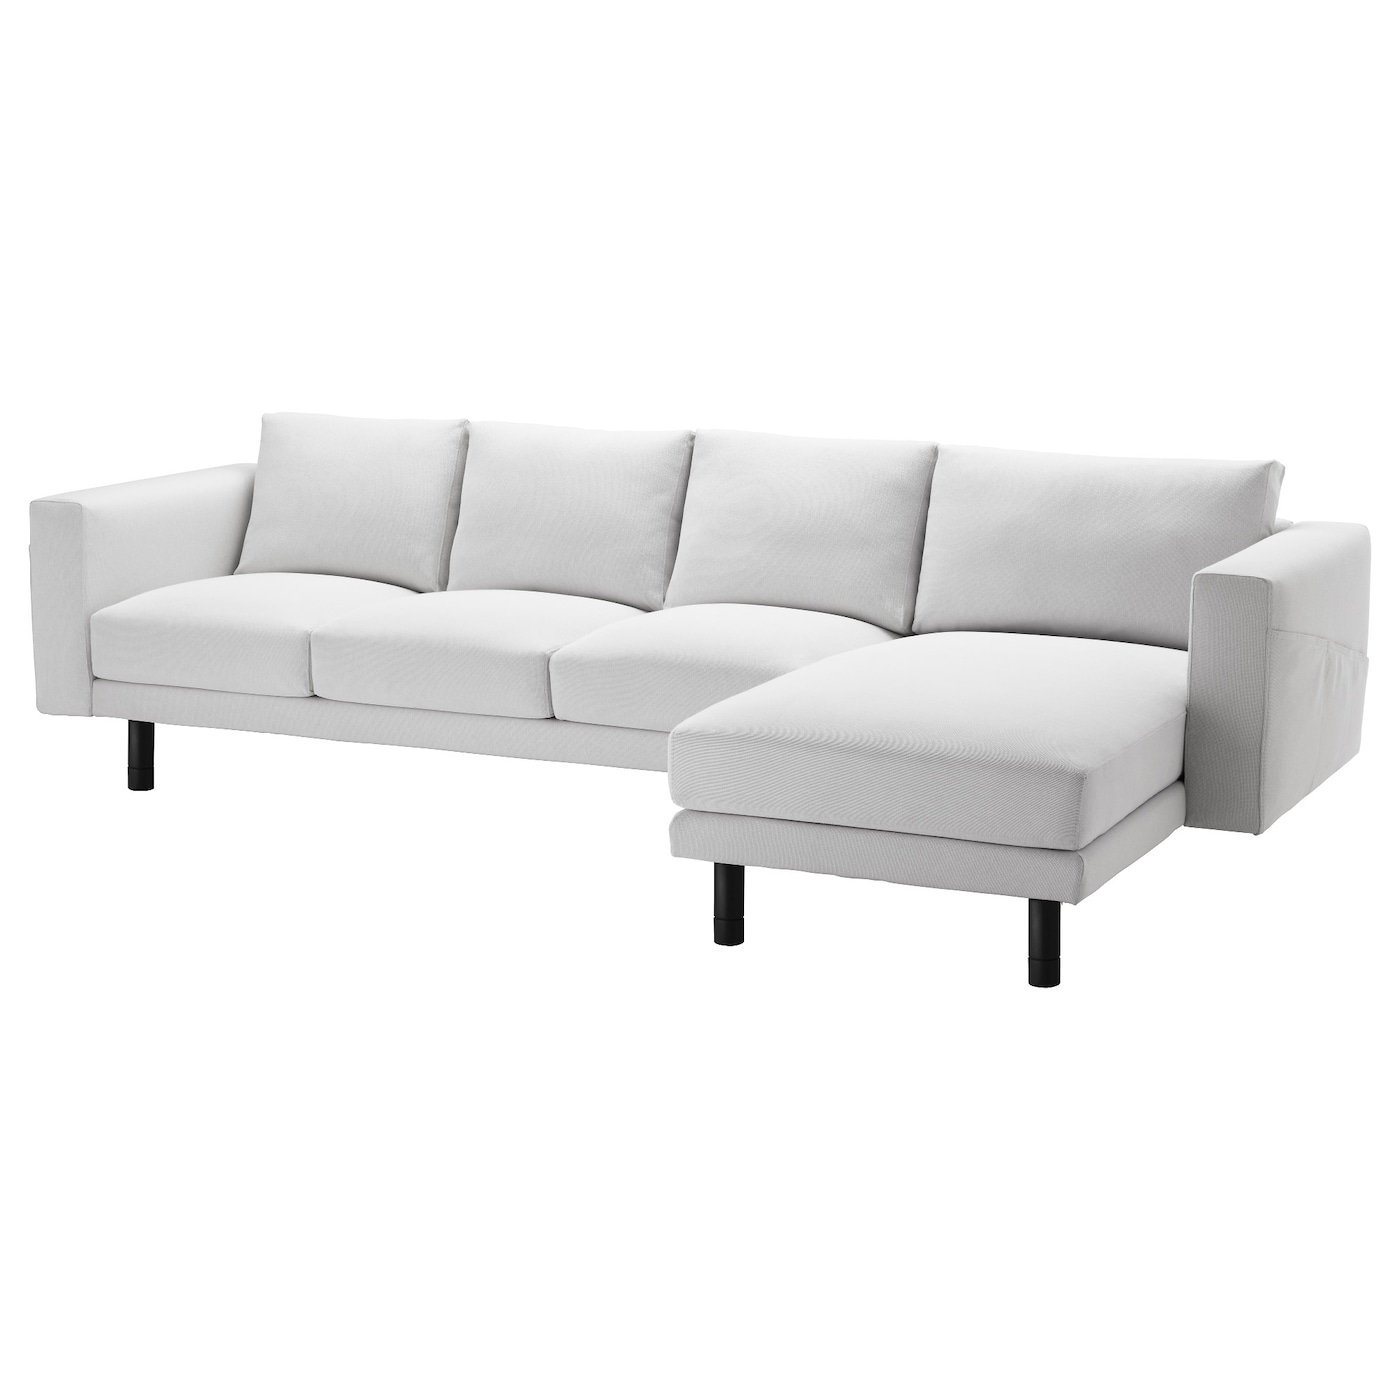 Norsborg three seat sofa and chaise longue finnsta white for Sofas chaise longue ofertas